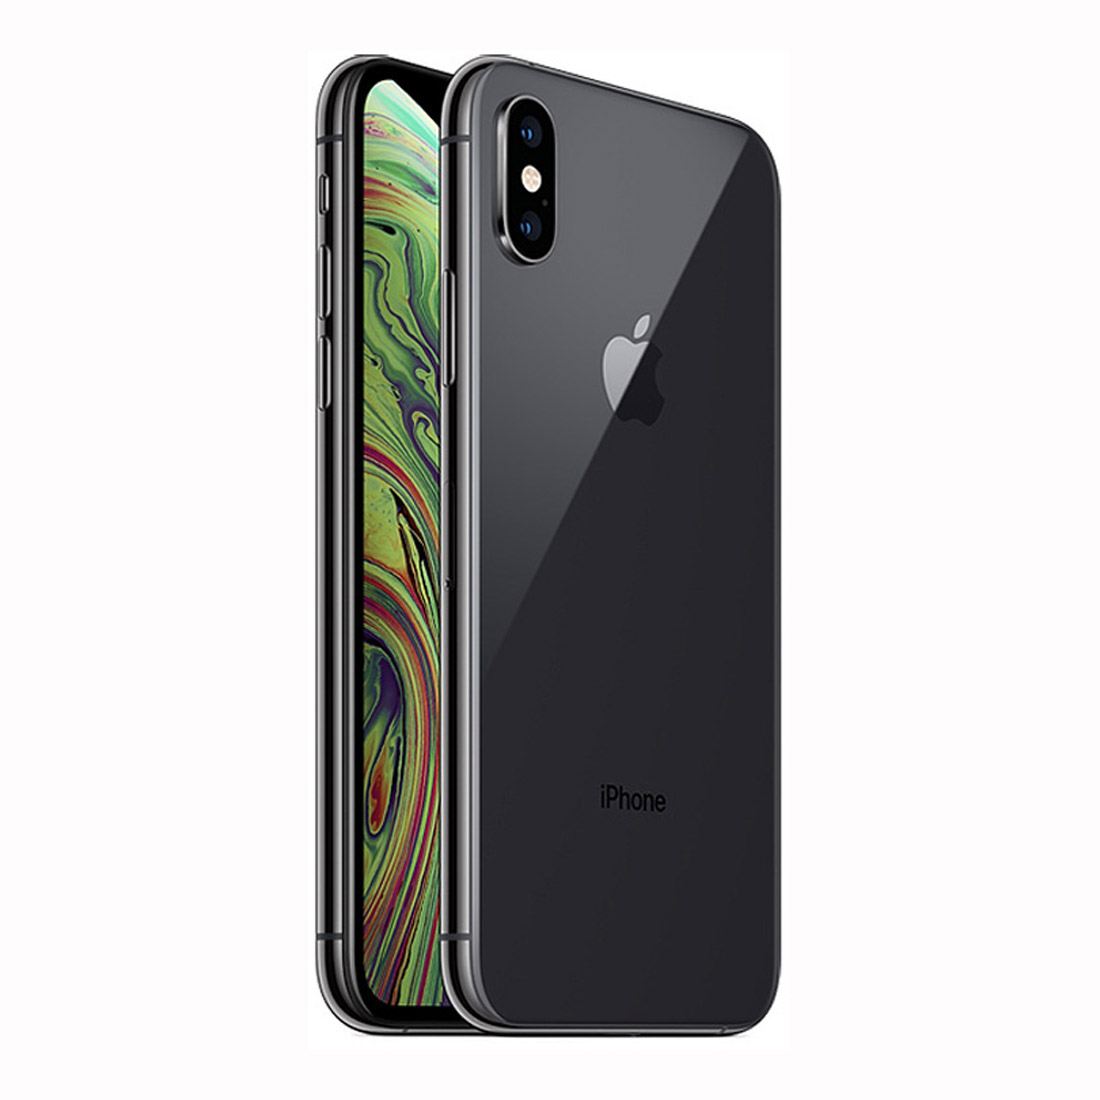 [Open Box - As New] Apple iPhone XS 512GB - Space Grey